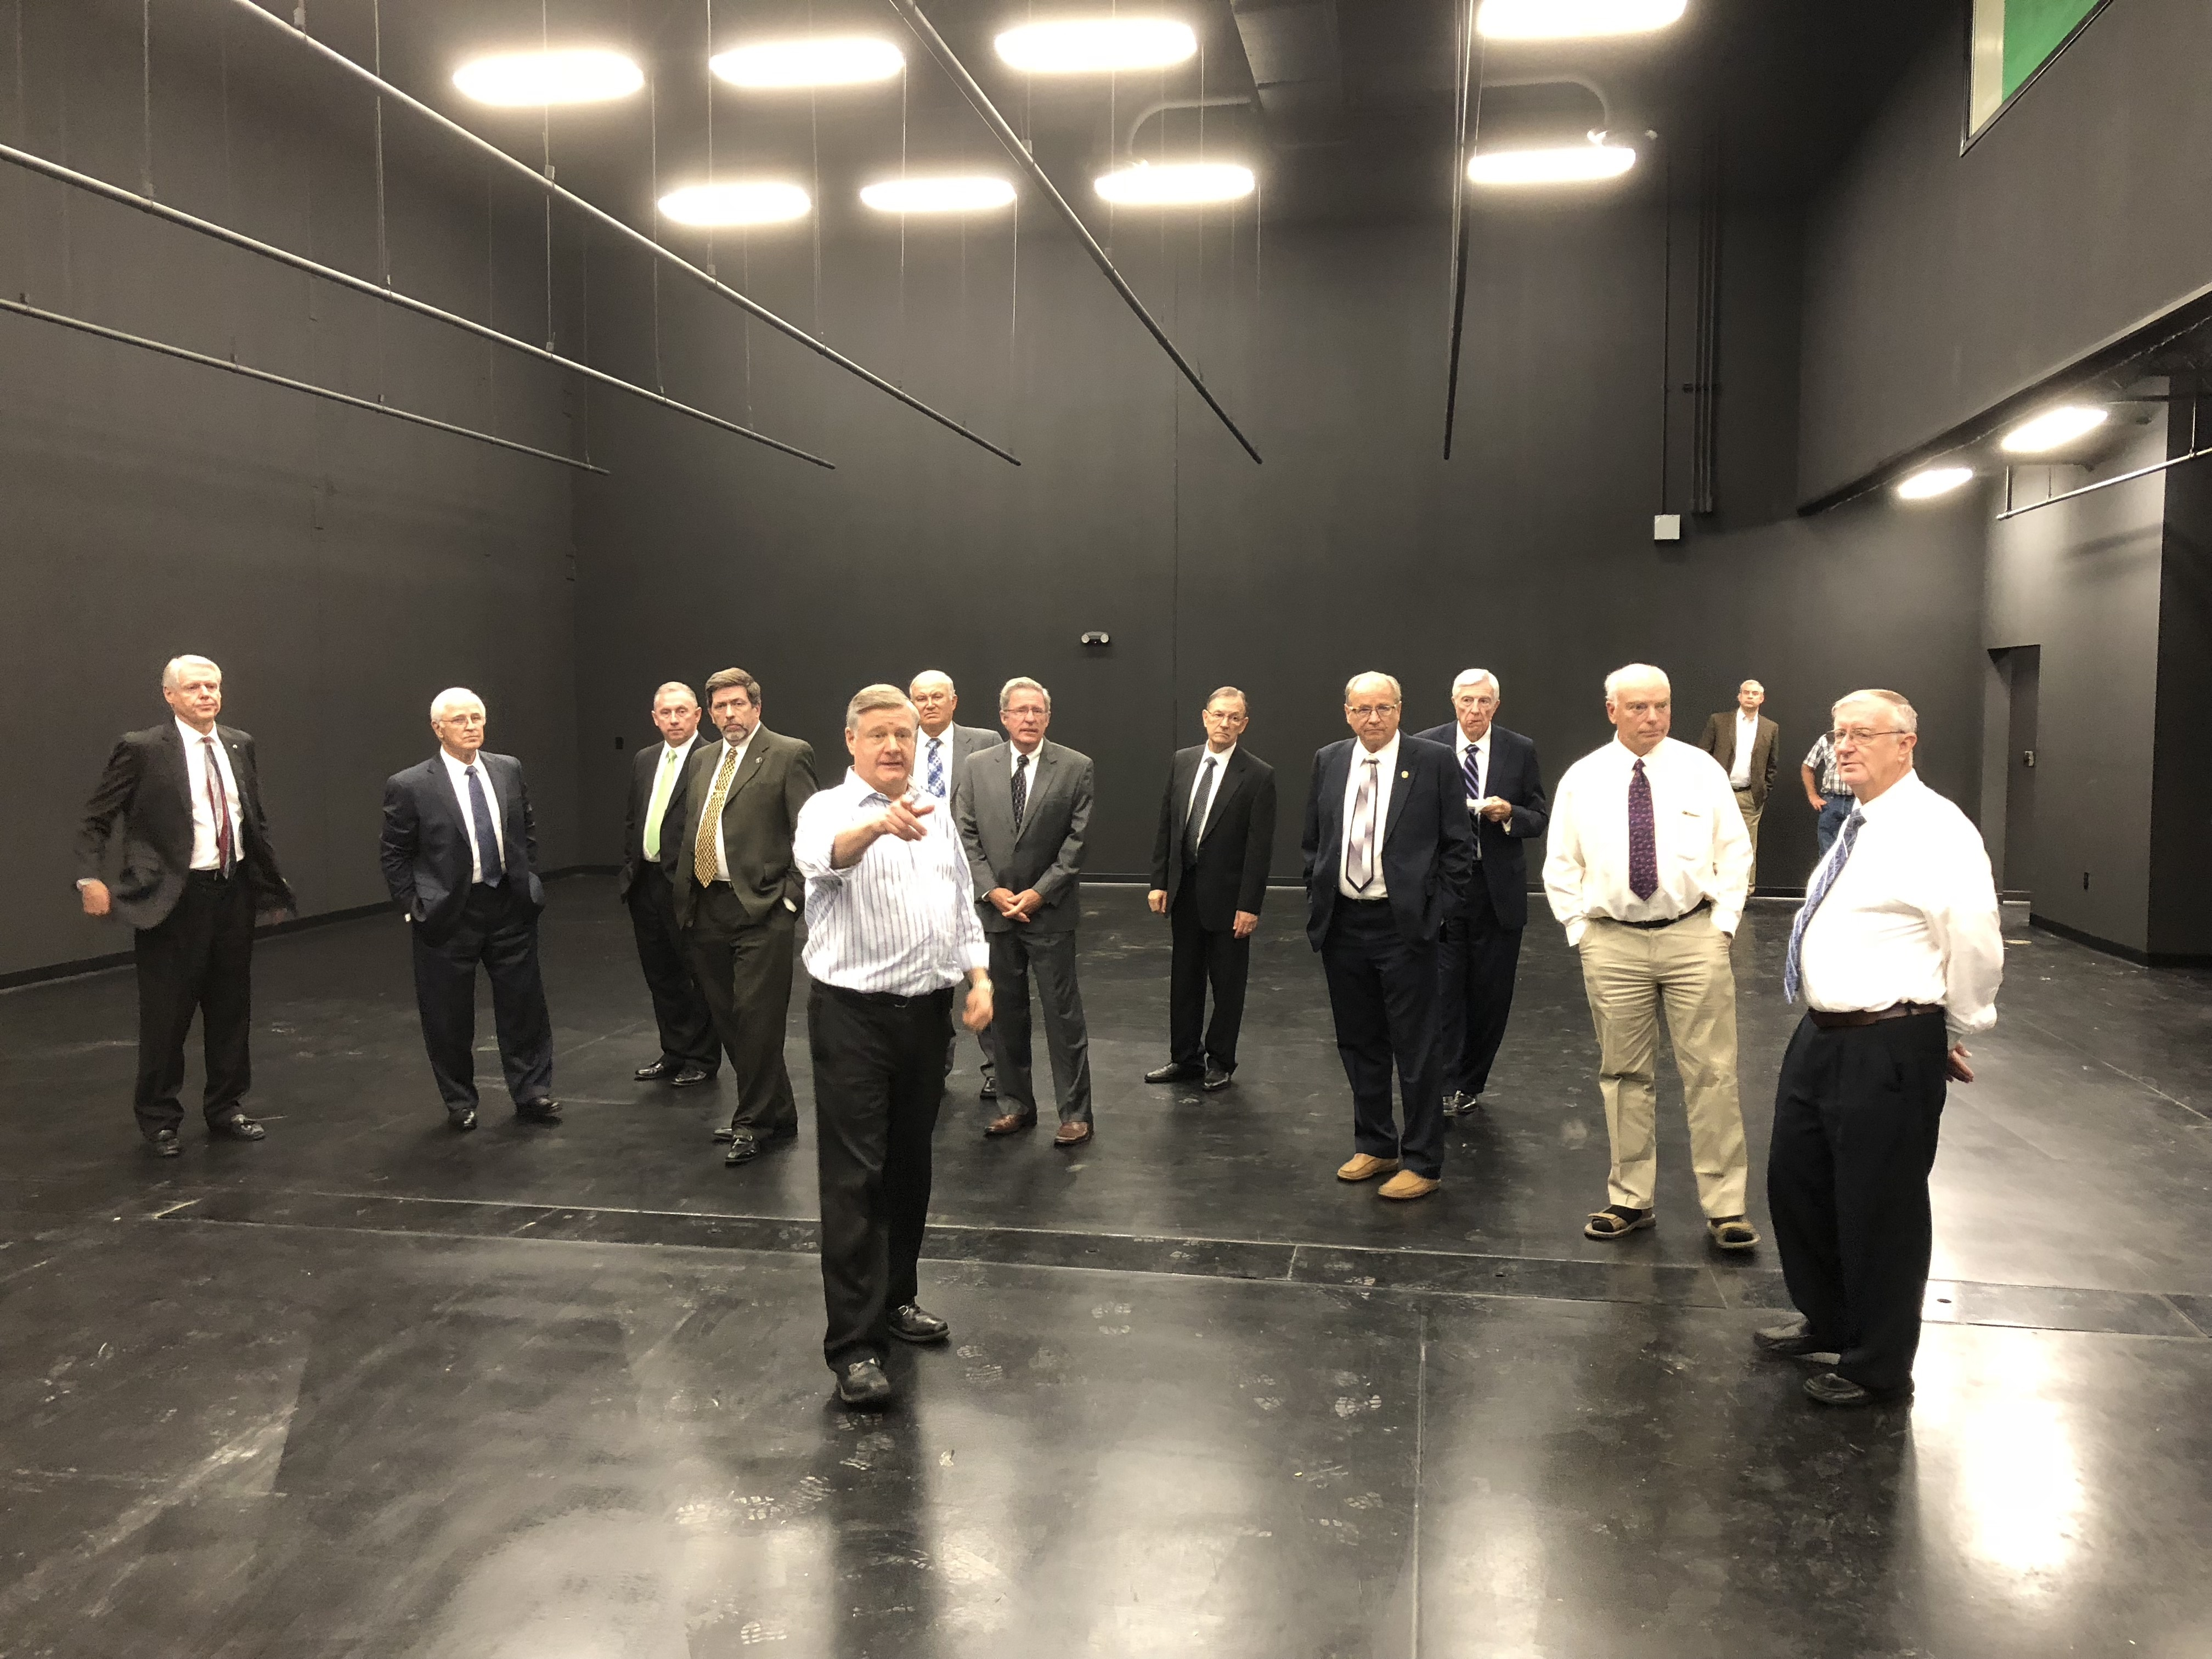 Peter Eddington gives Council of Elders members a tour of the new recording studio space.